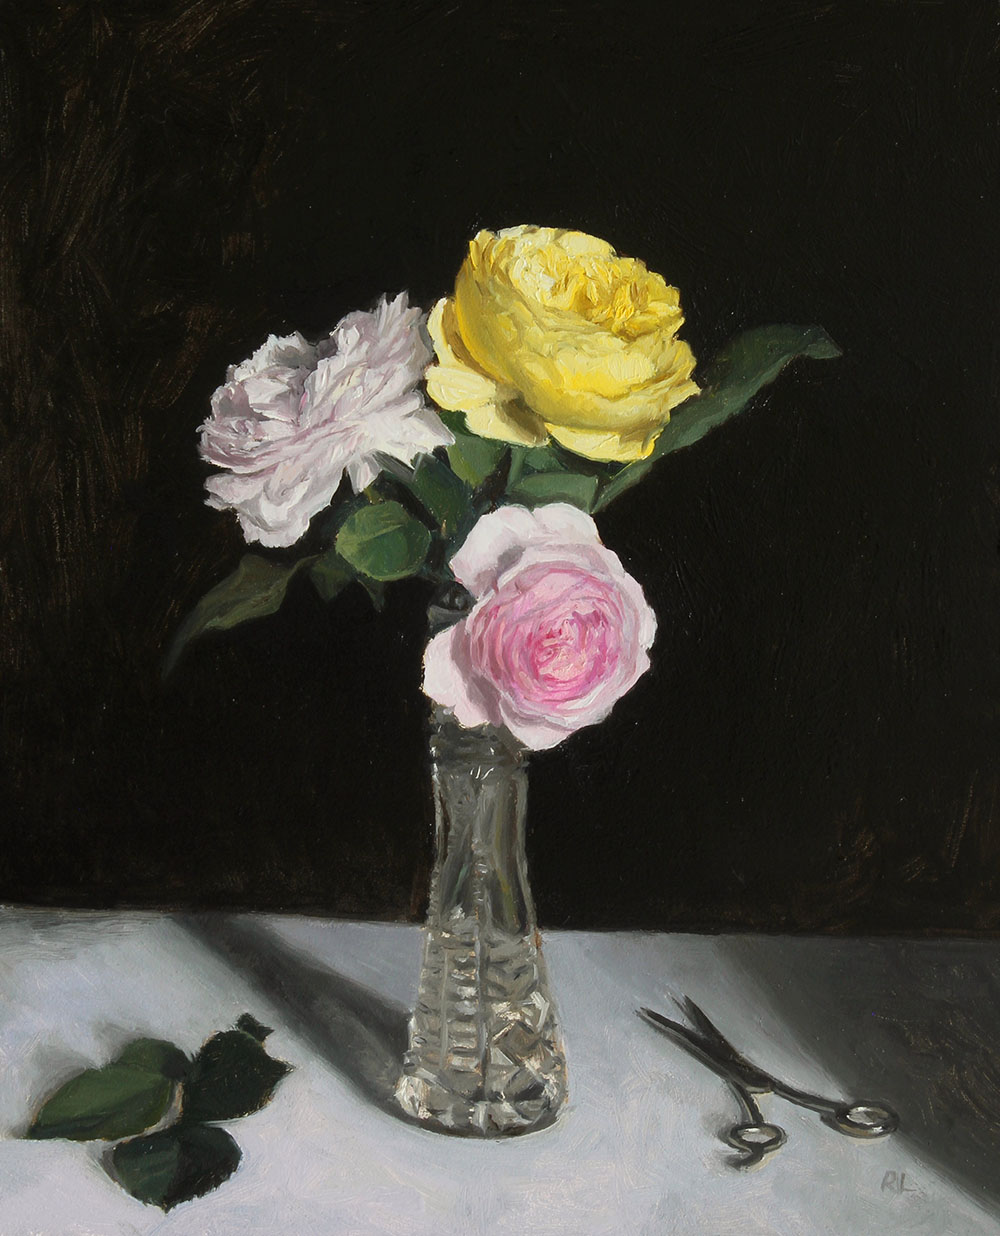 Roses in a Cut Glass Vase